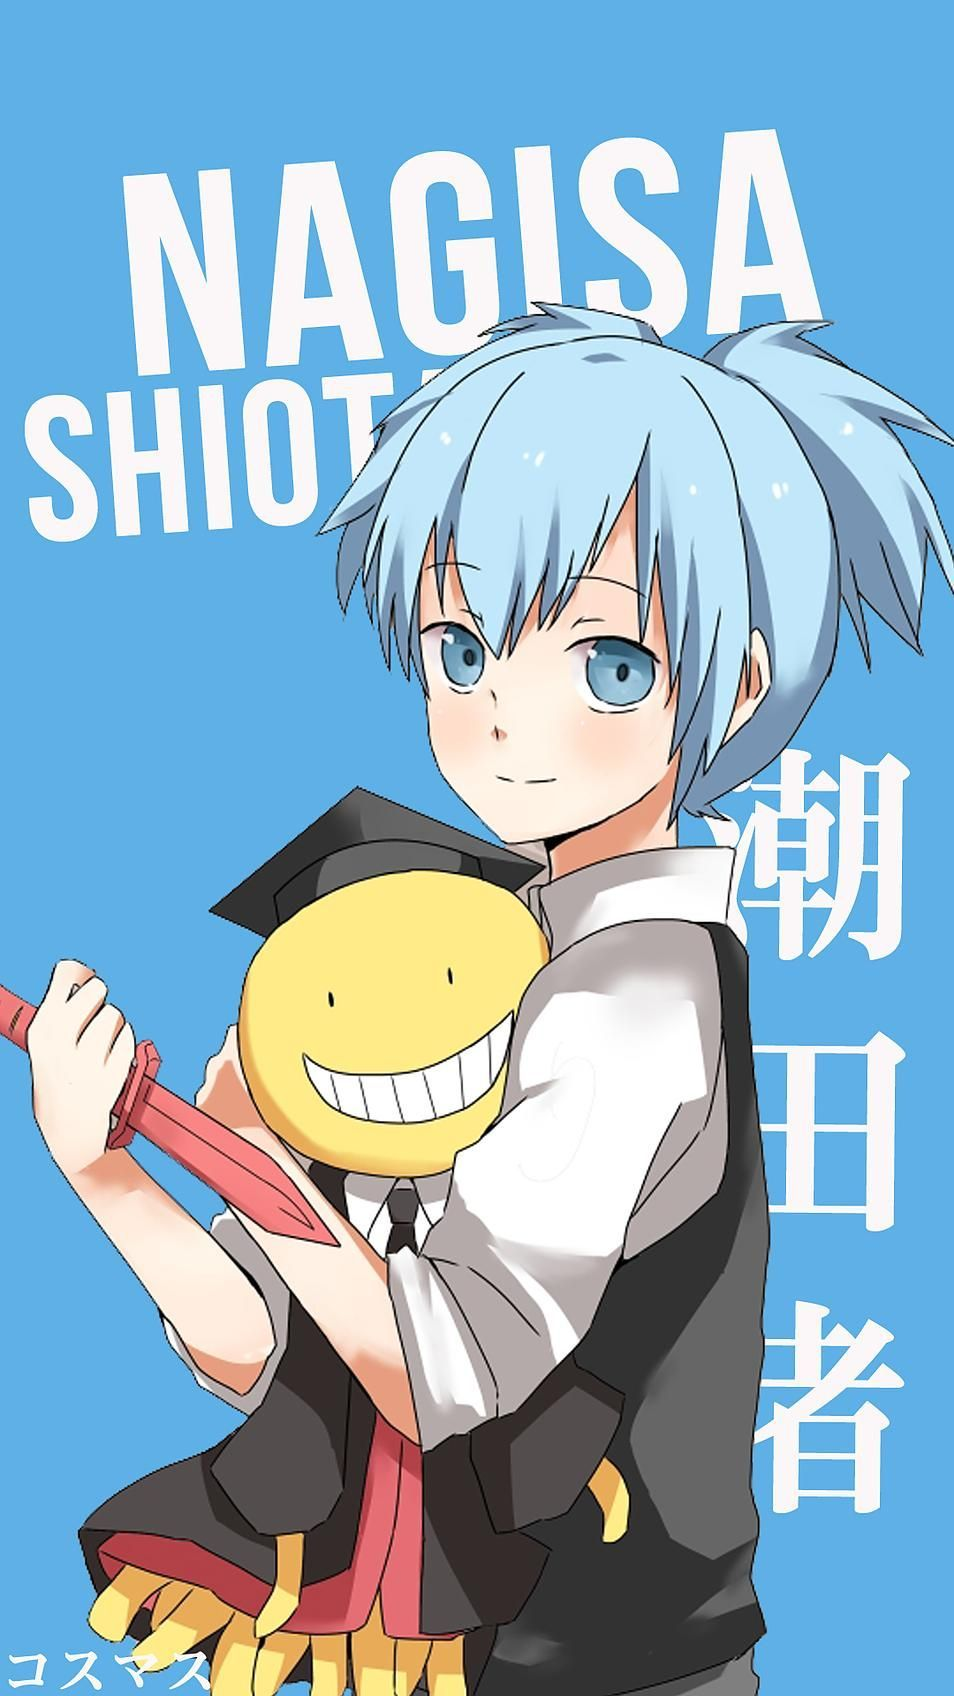 Nagisa Shiota (2020) Anime character names, Assasination